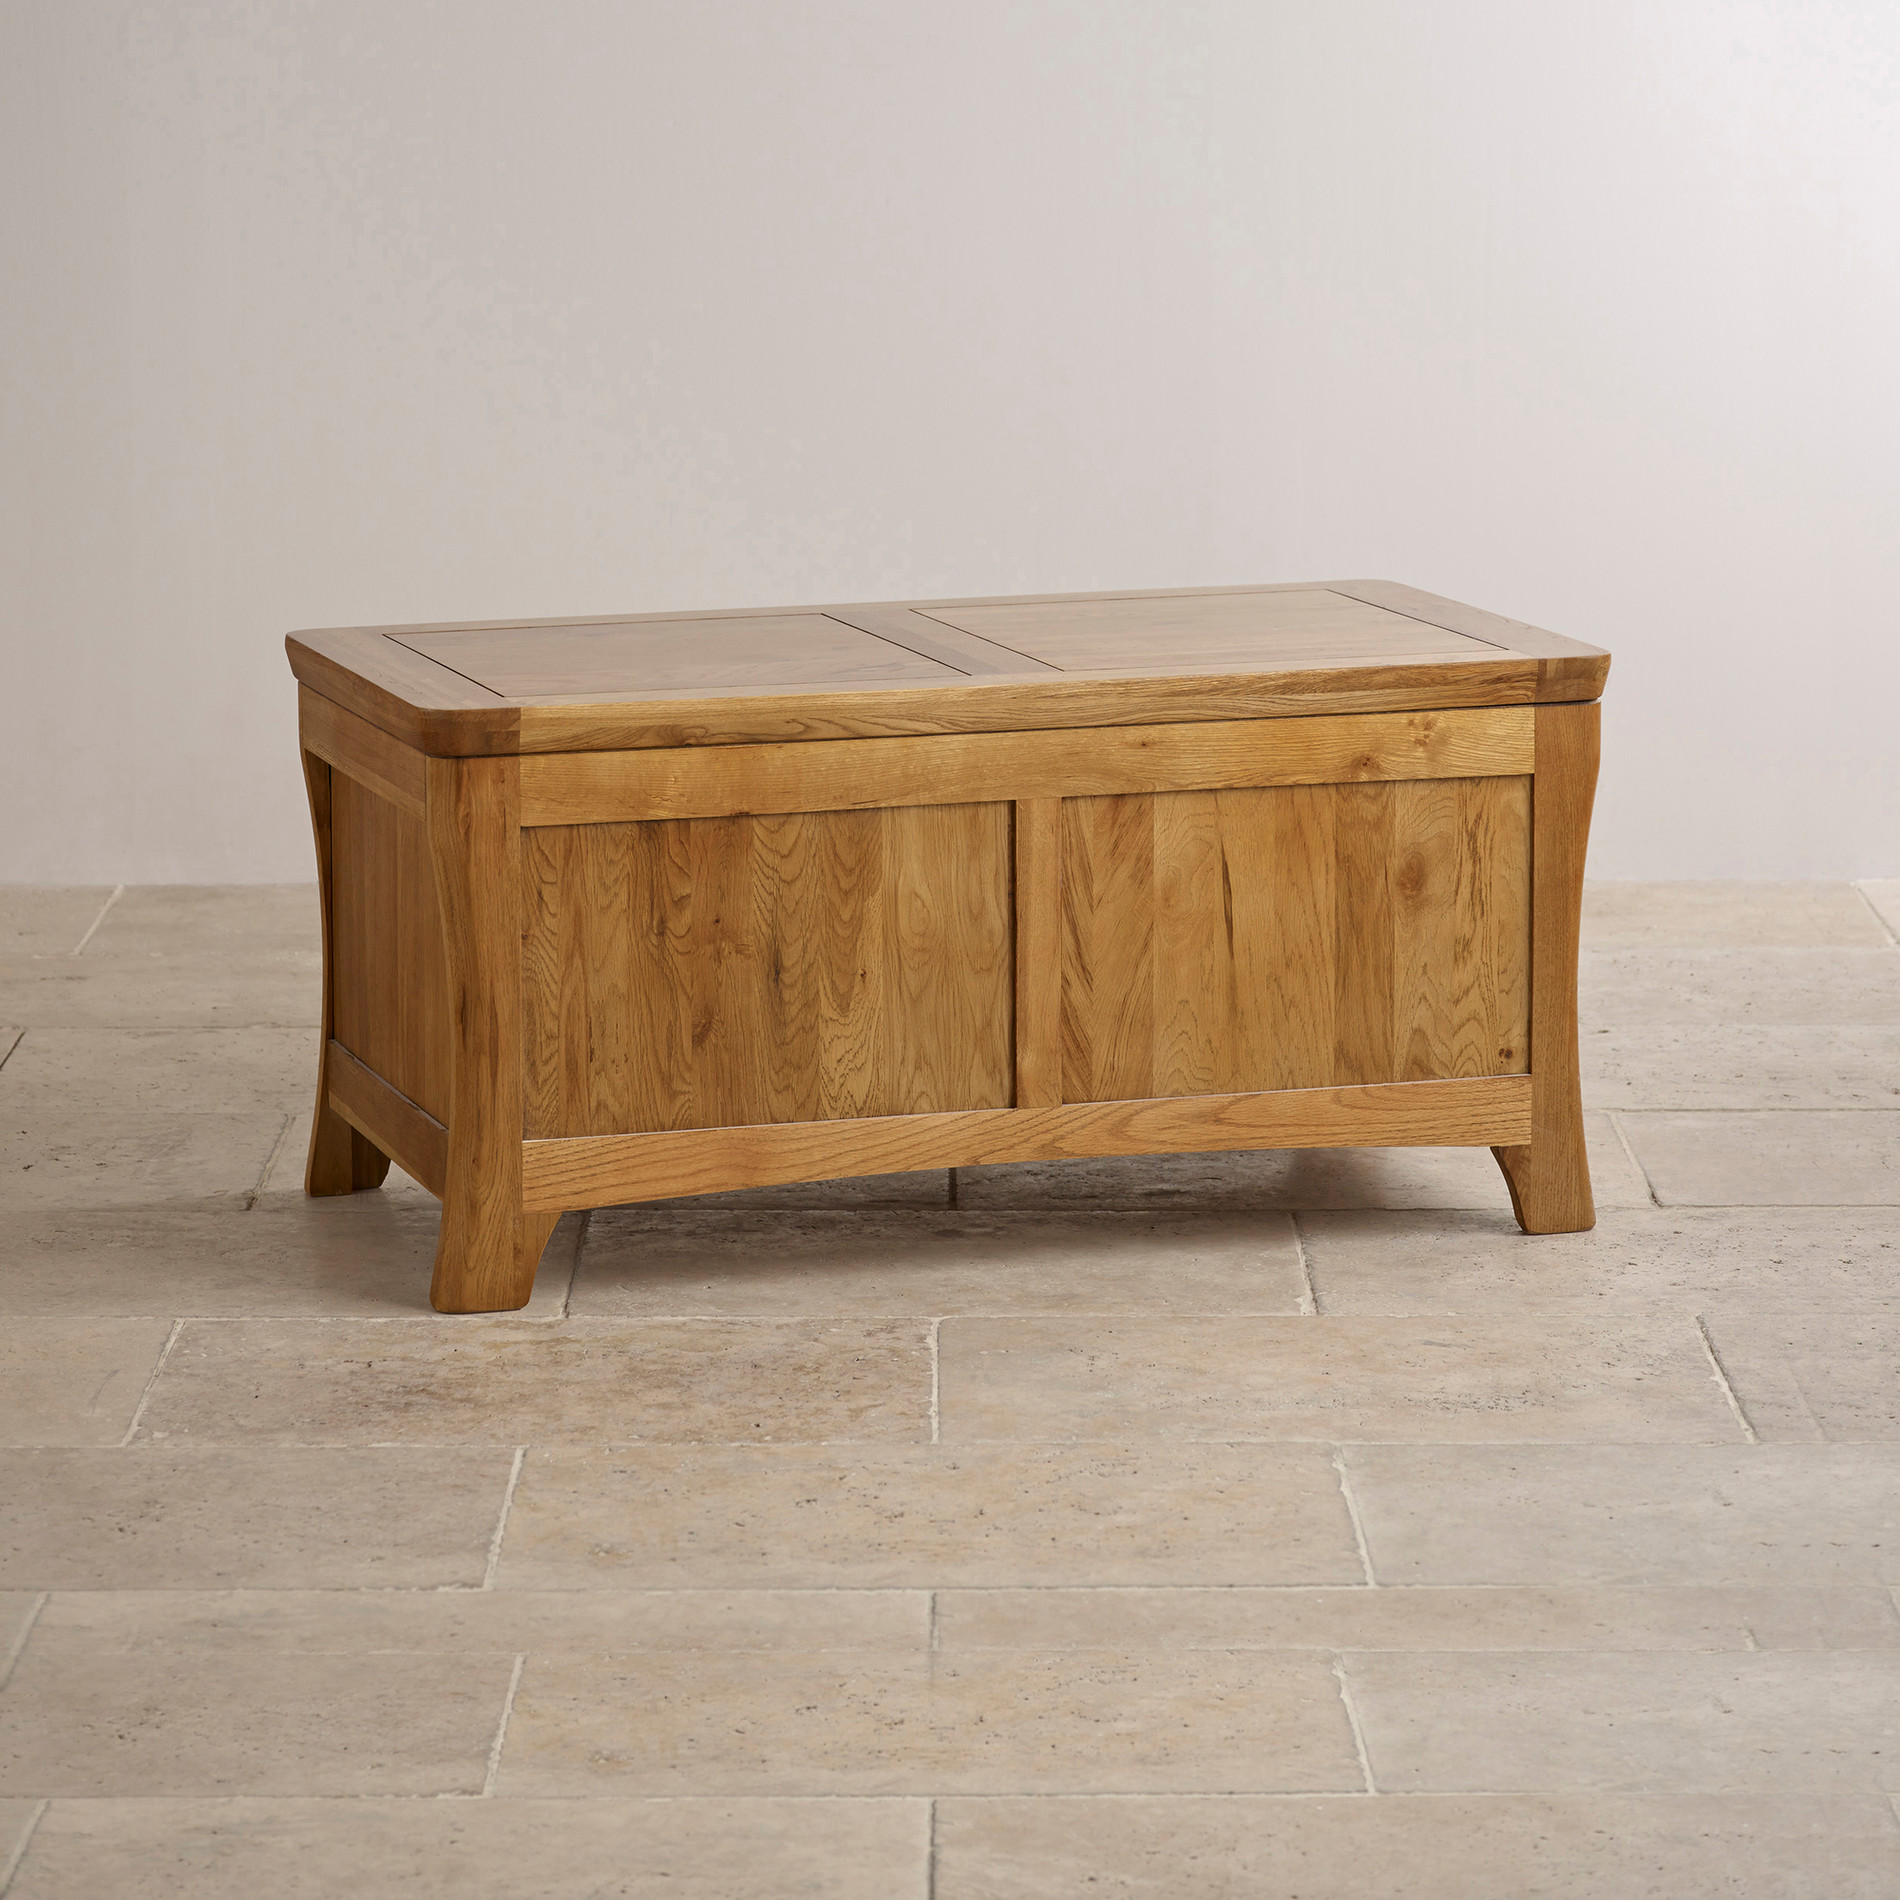 Orrick Blanket Box in Rustic Solid Oak